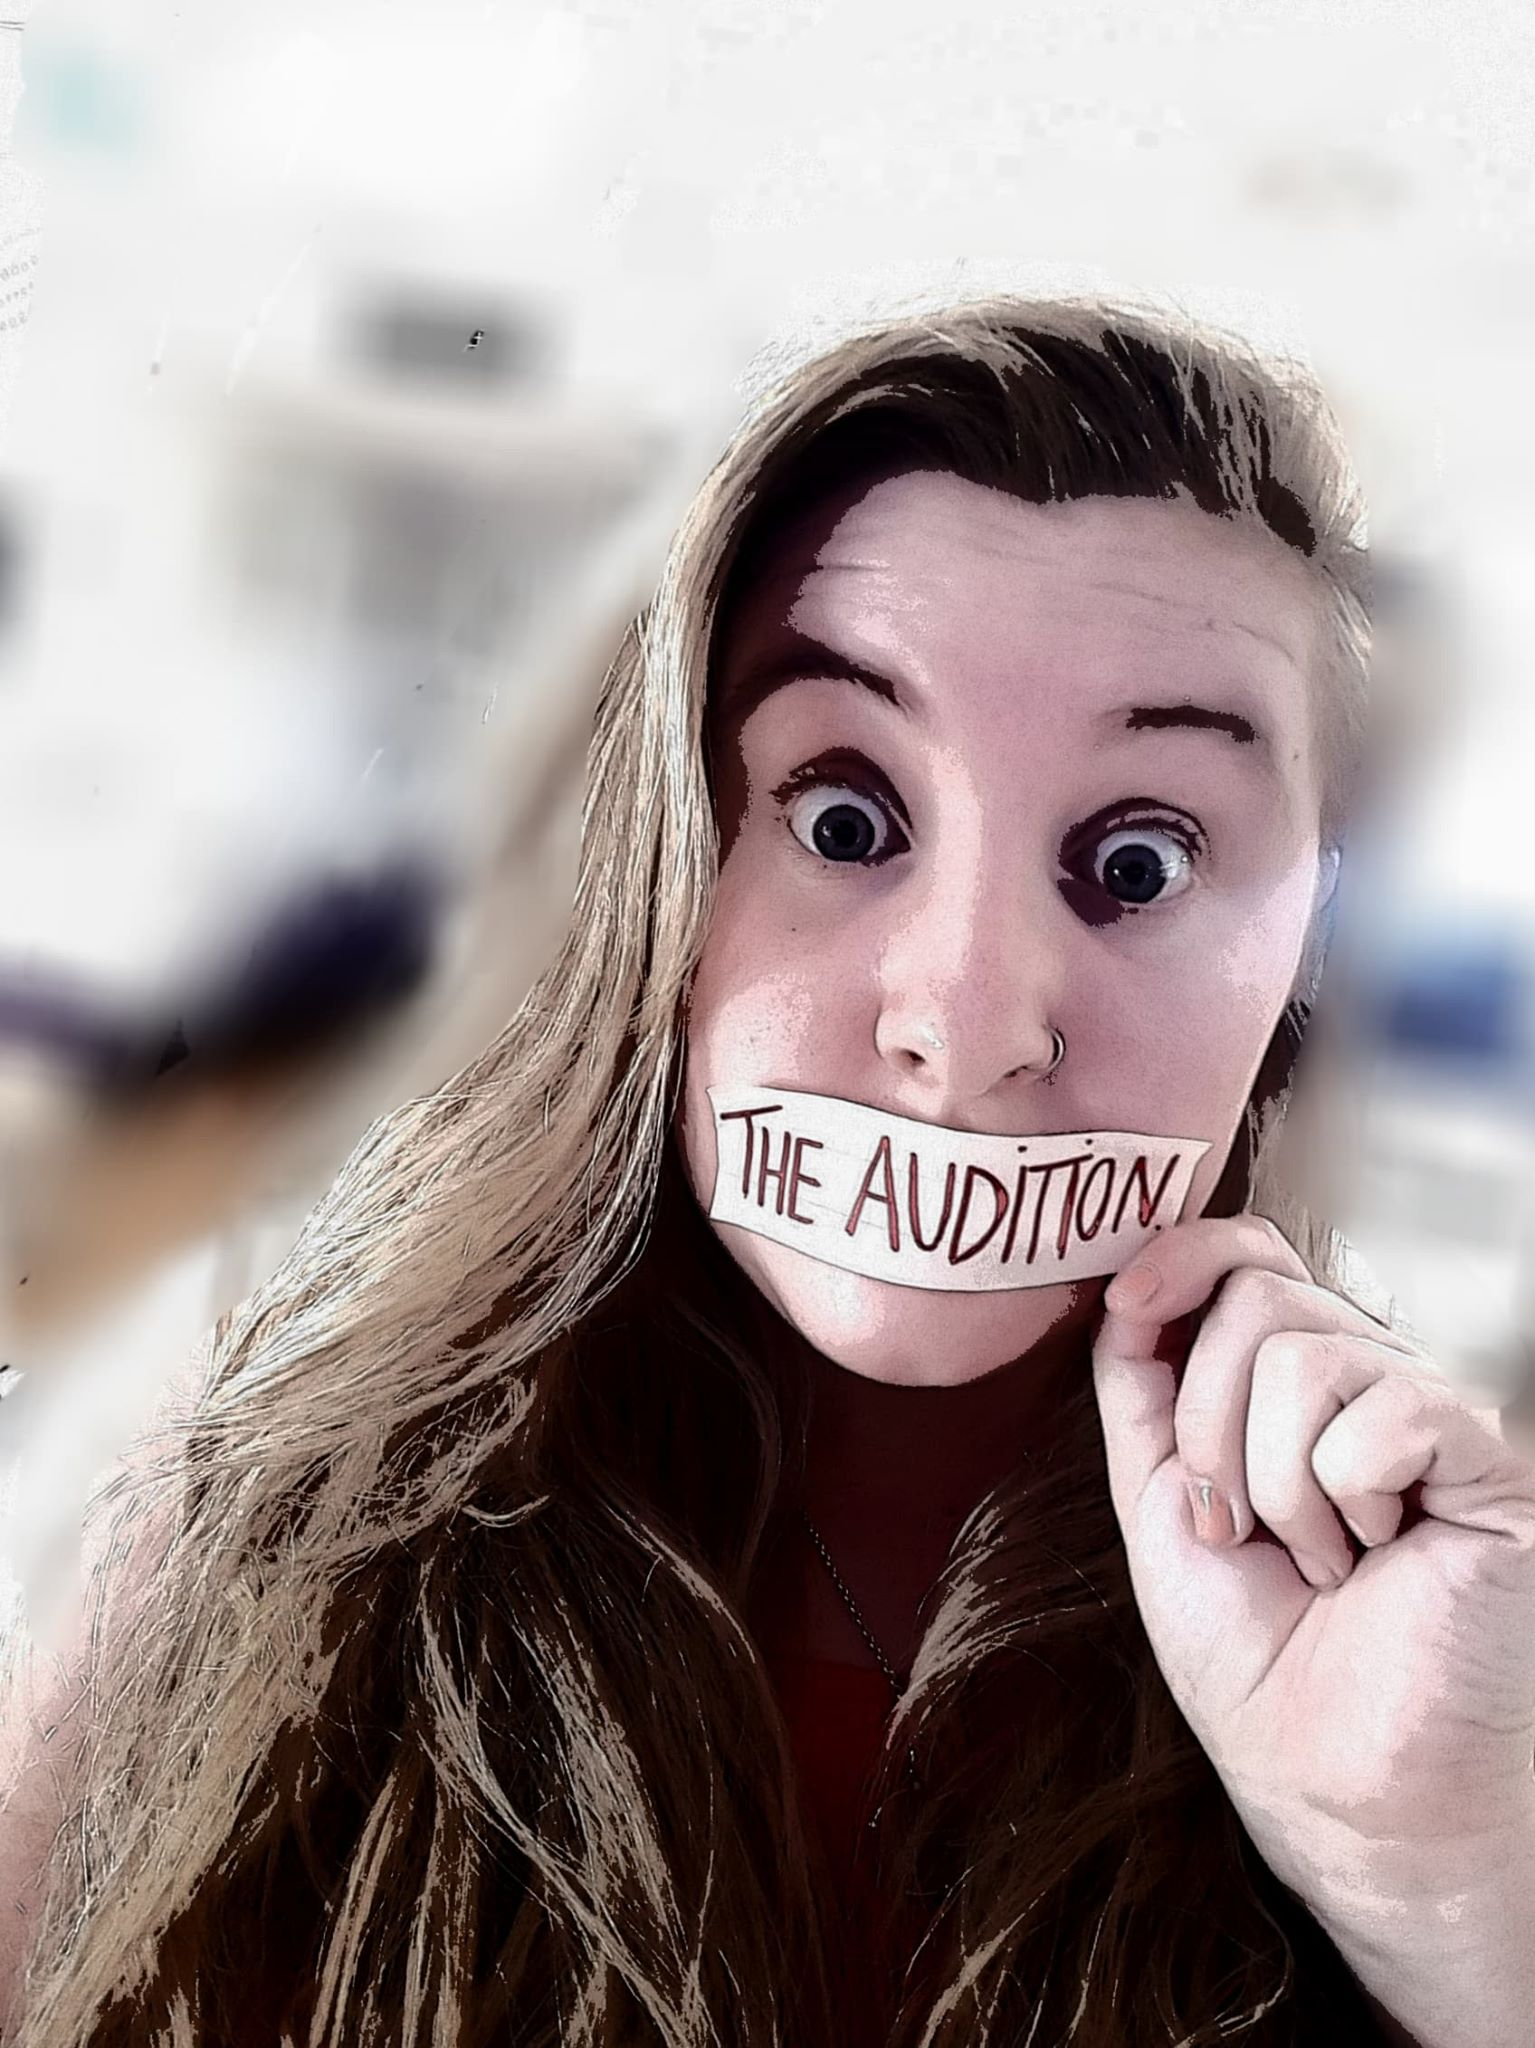 The Audition - Eve Lynch image